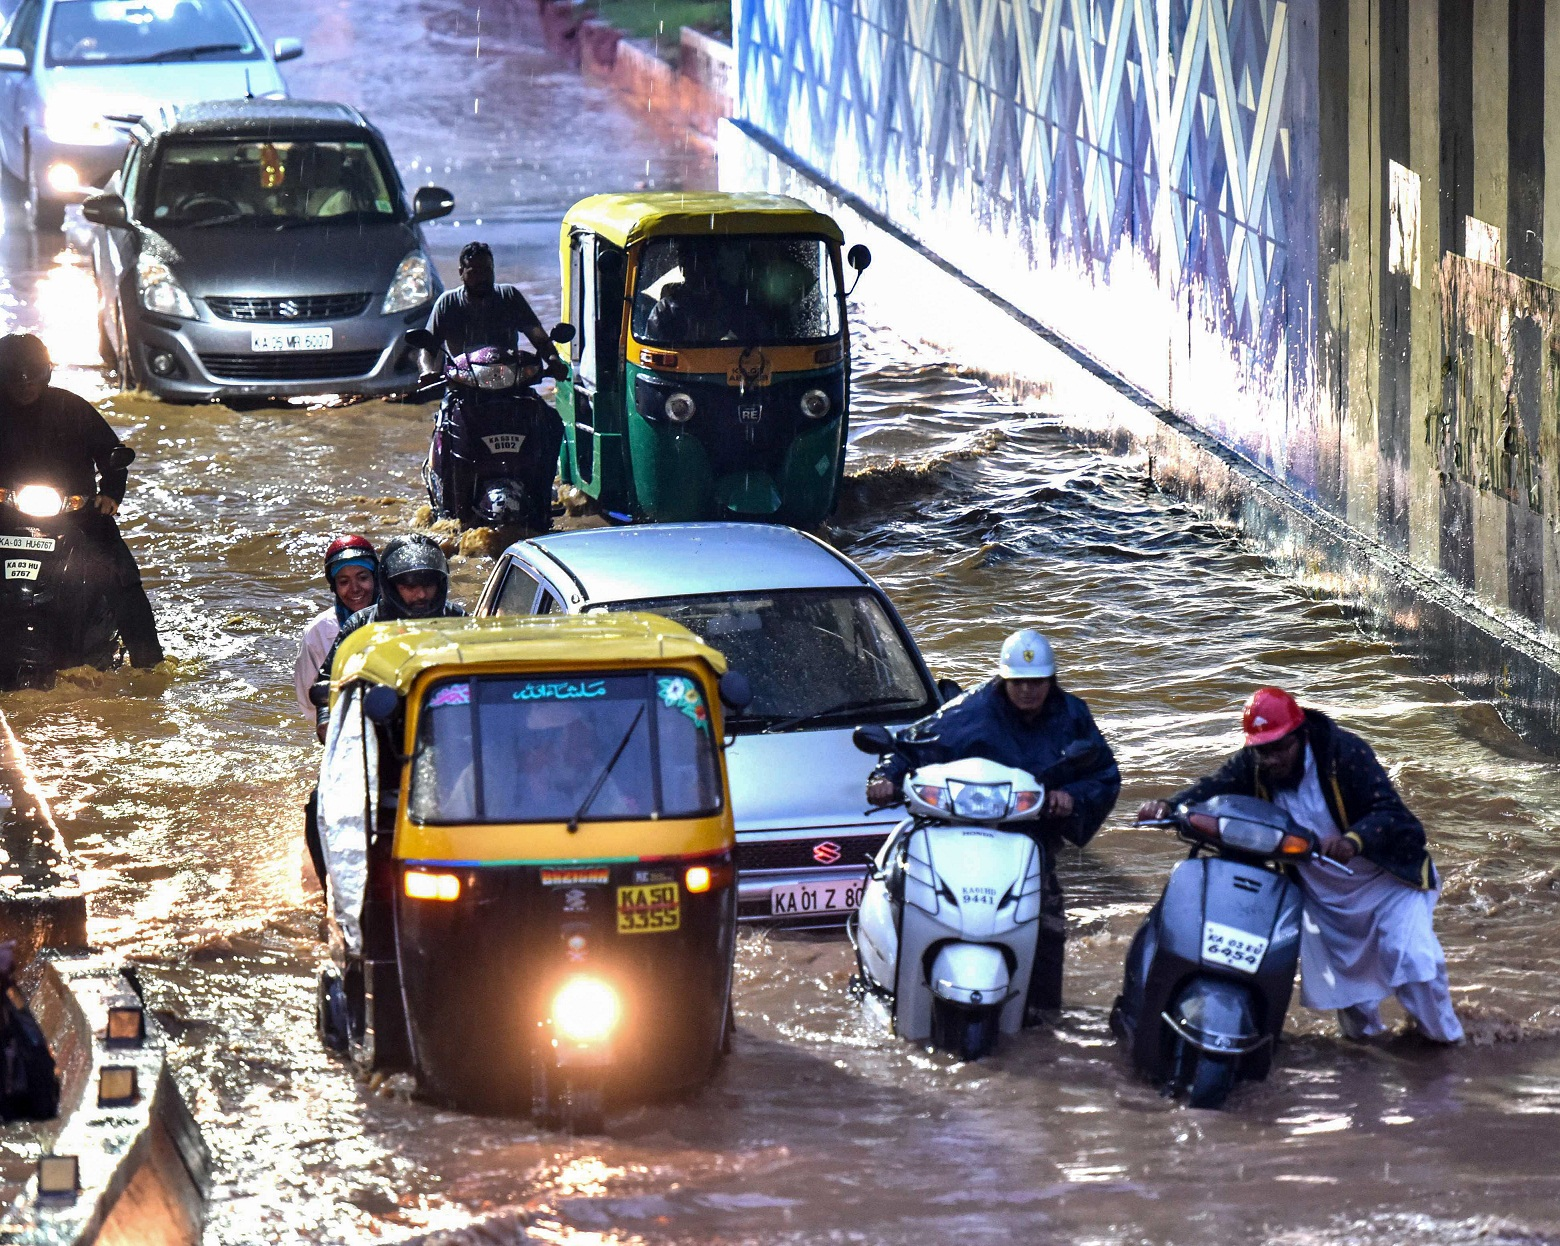 Many auto drivers make a killing when it rains, but they have their share of woes, too.